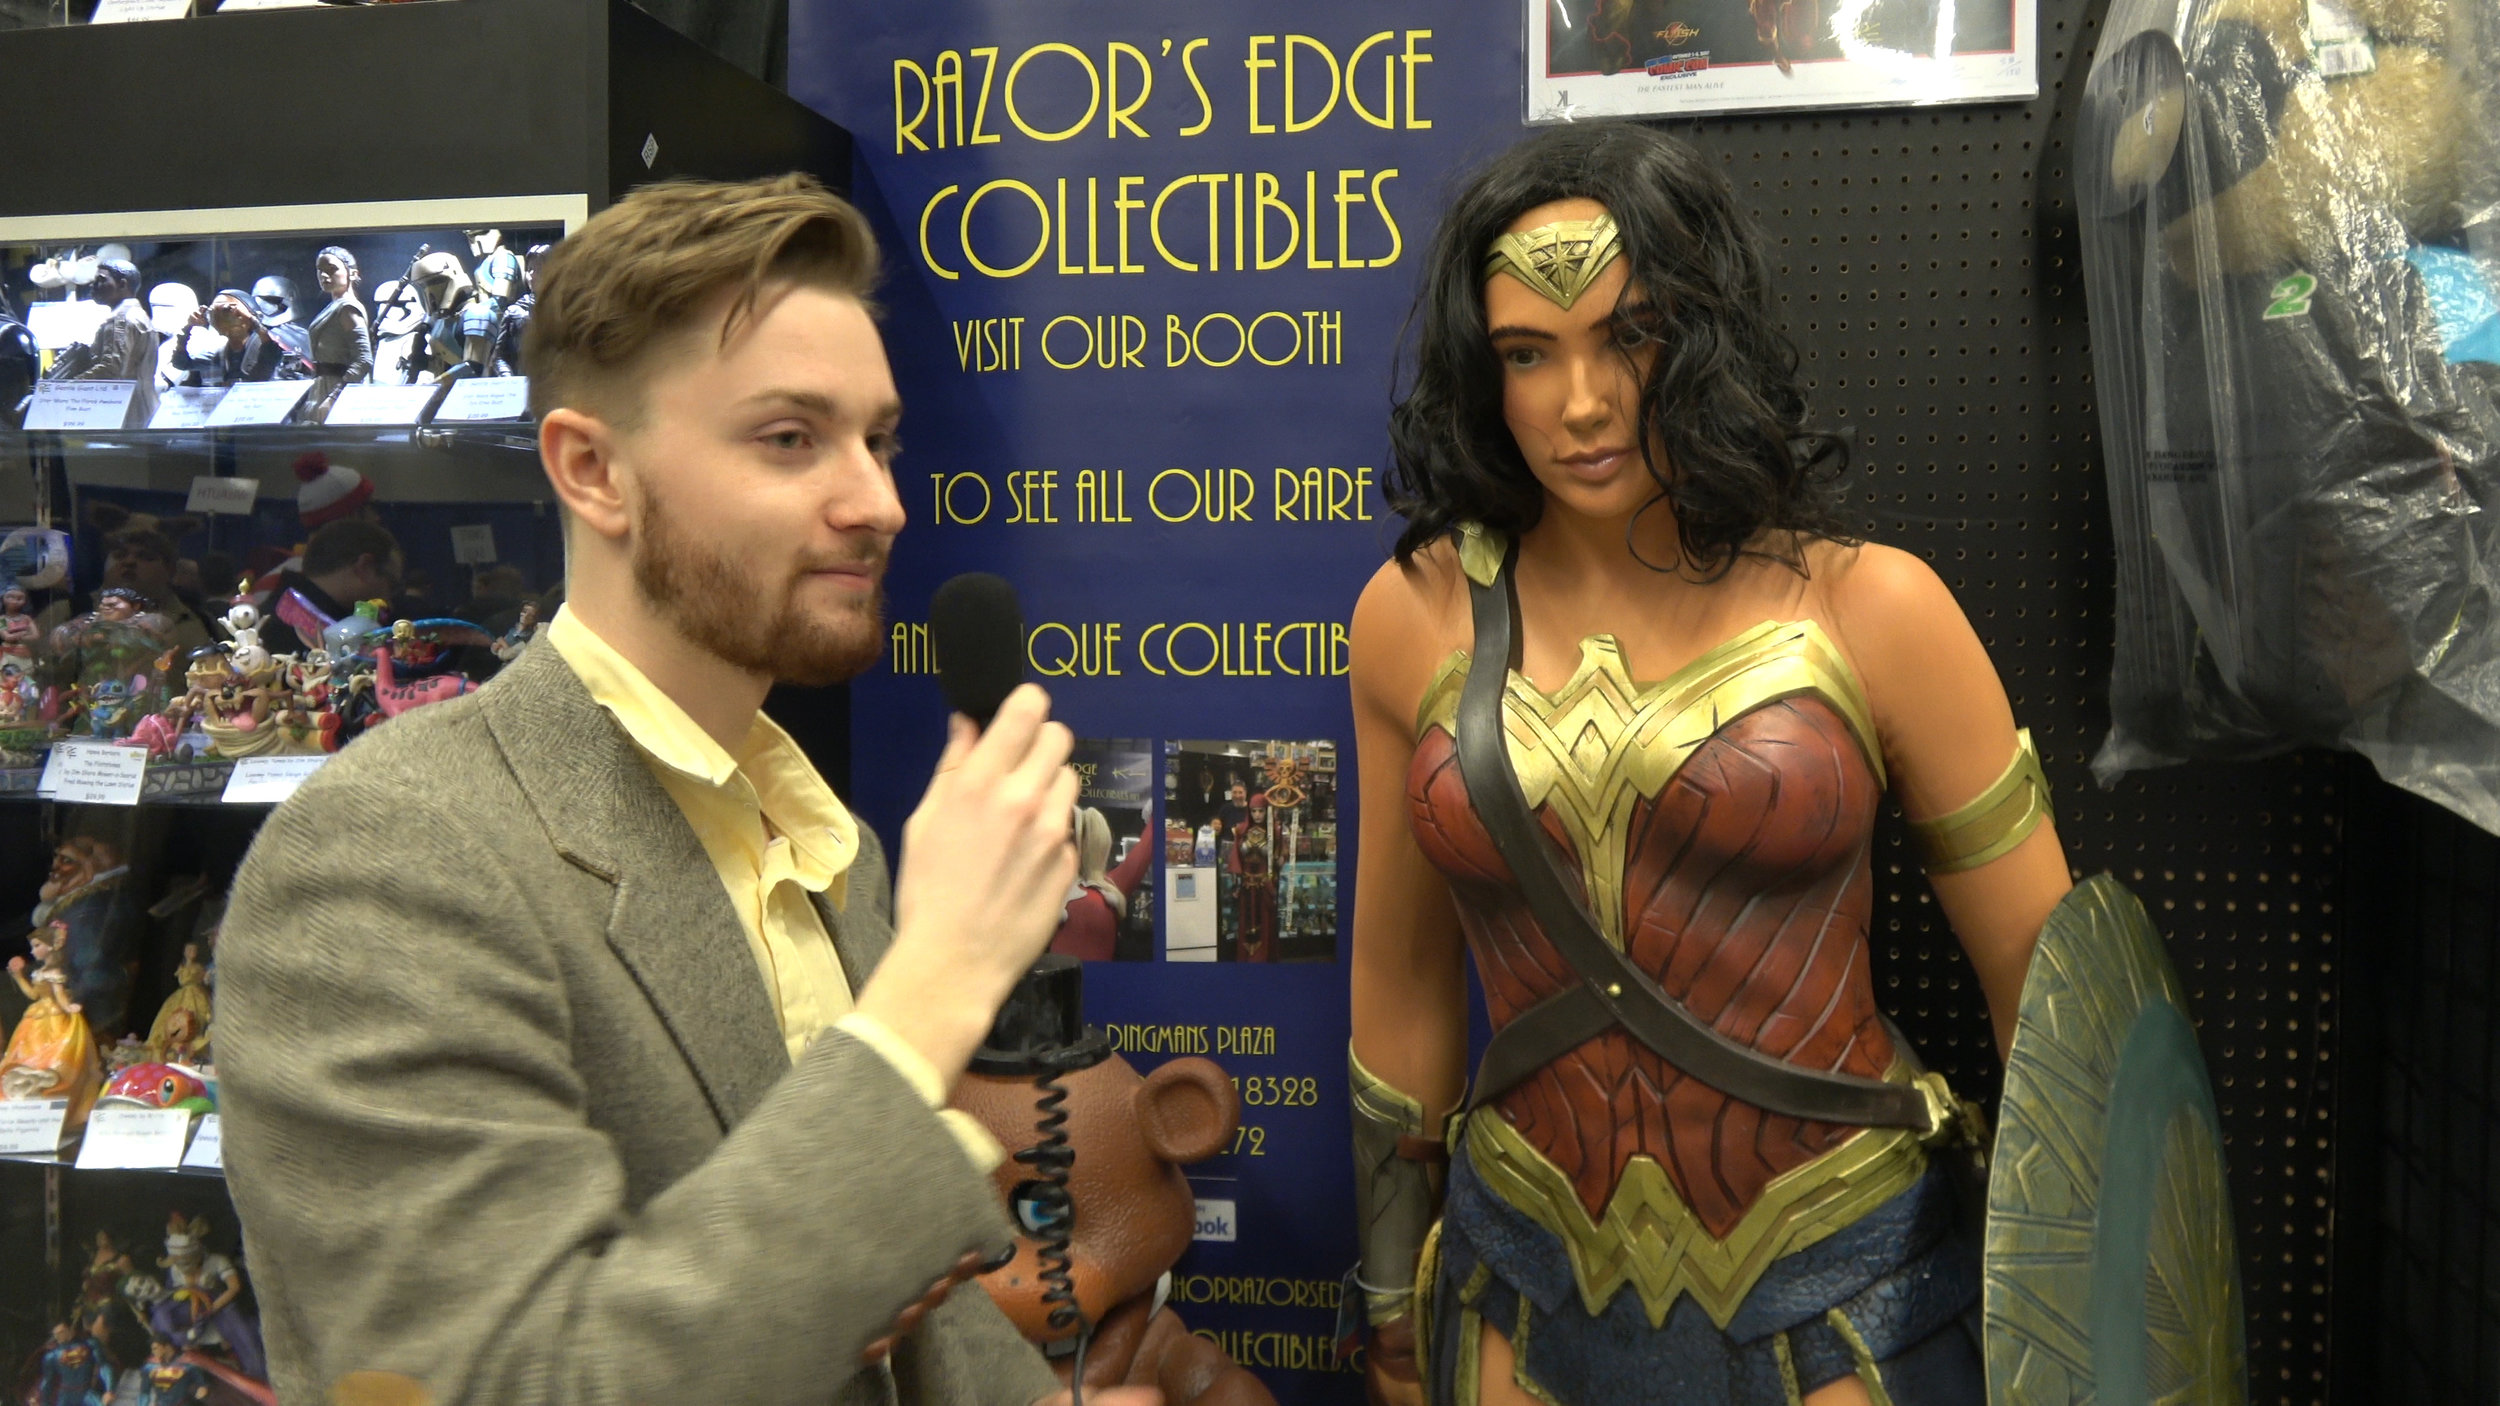 I tried a bit where I interviewed a motionless Wonder Woman statue, but it was too unfunny, even for me